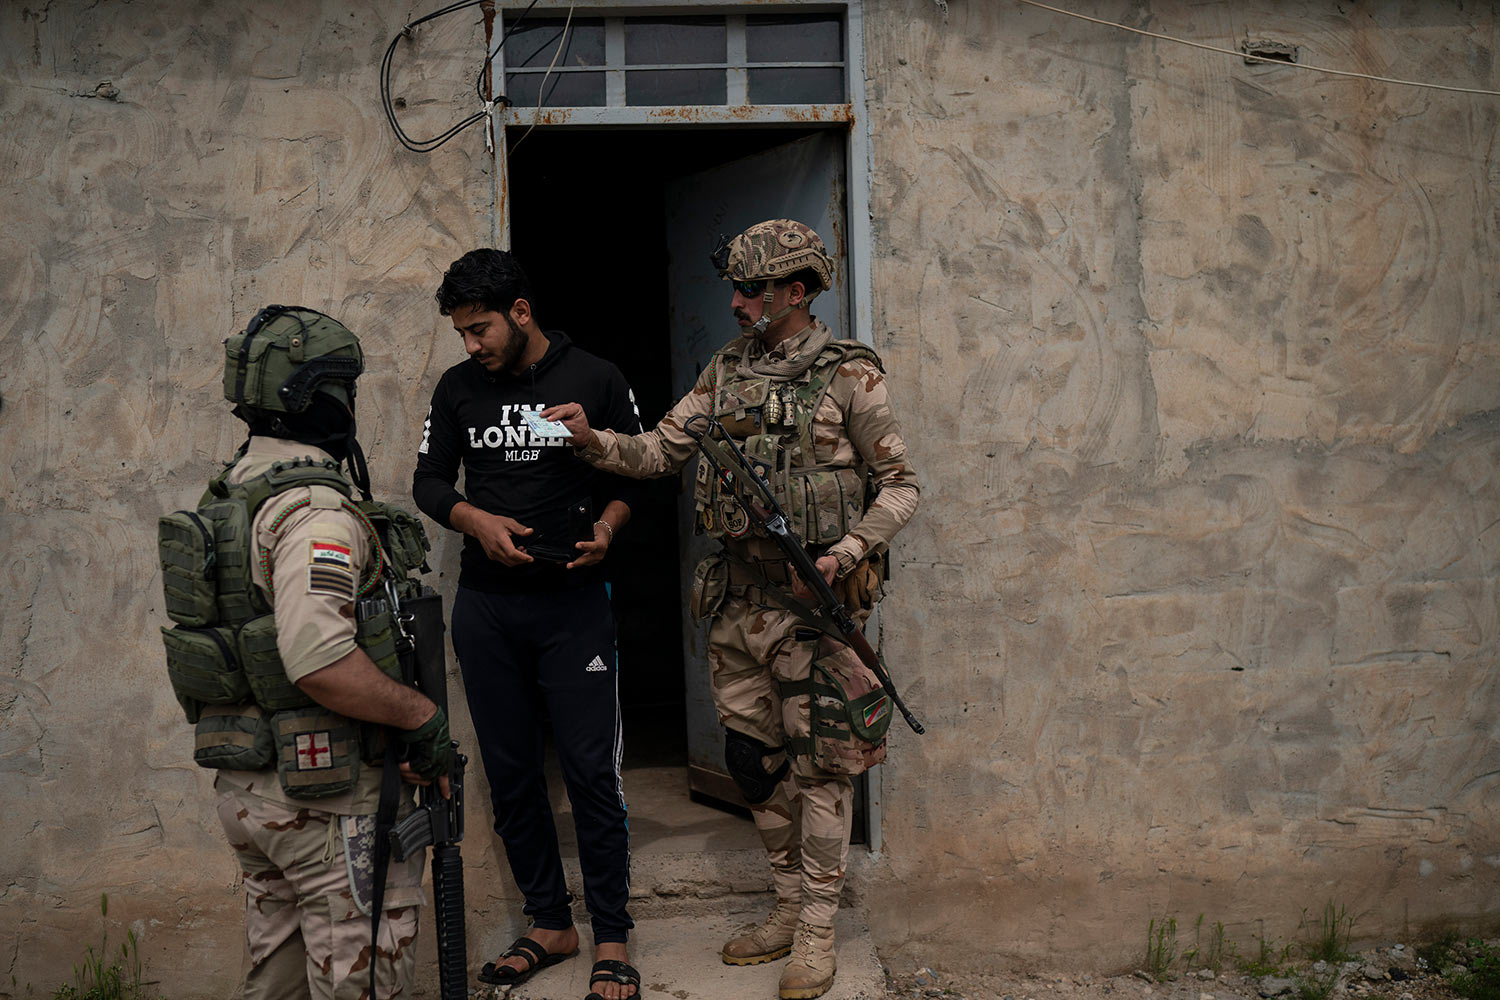 In this April 5, 2019 photo, Iraqi army 20th division soldiers check the ID of a man during a raid in Badoush, Iraq. (AP Photo/Felipe Dana)